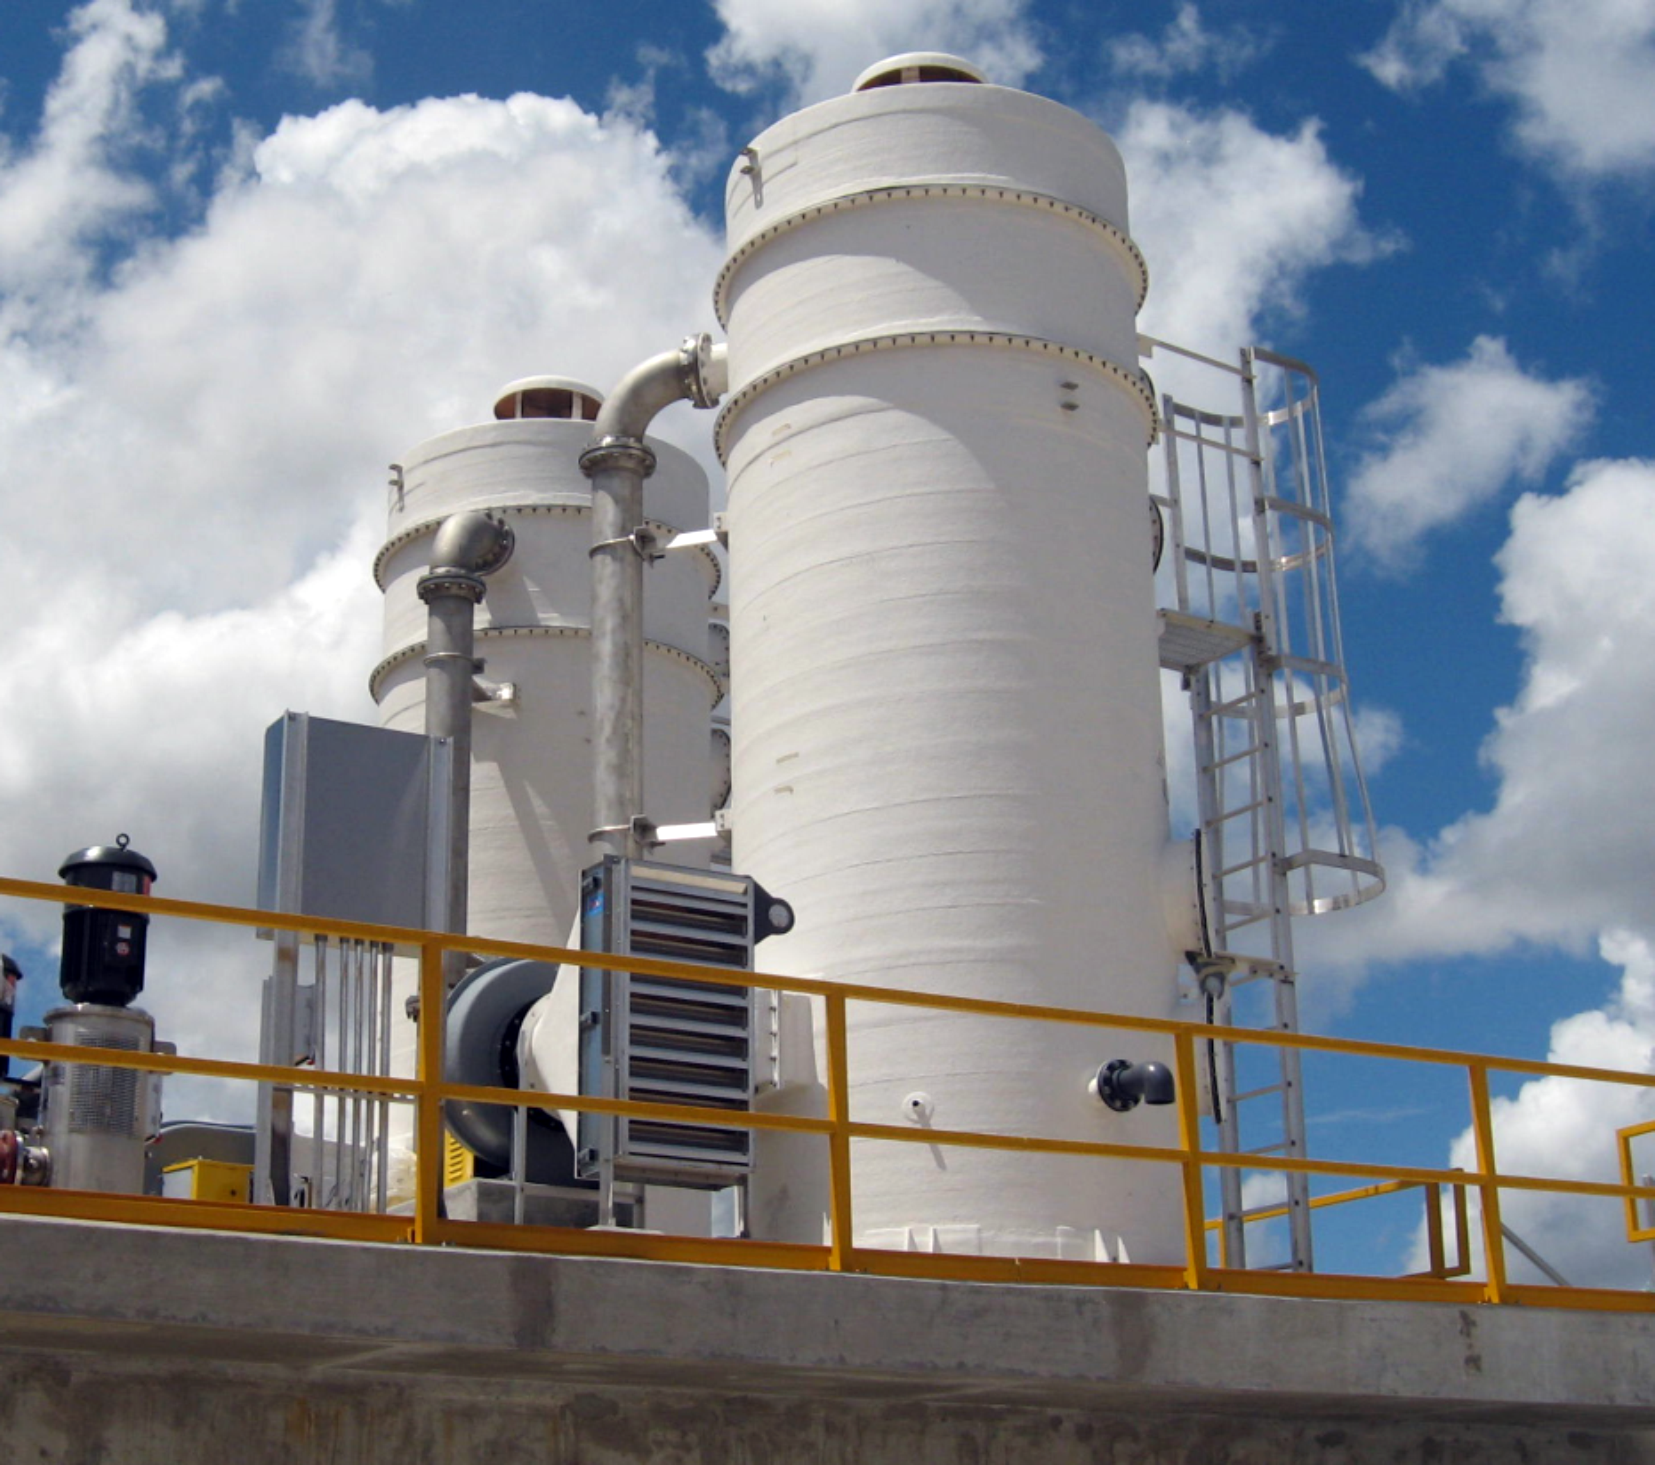 """Delta Cooling Towers, Inc. designed and fabricated Two 7'-0"""" Diameter x 20'-0"""" high air stripping towers to treat potable water at the Hollywood Seminole Water Treatment Plant in Florida. The two white towers are surrounded by a protective yellow gate. In the background there is blue skies with white puffy clouds."""